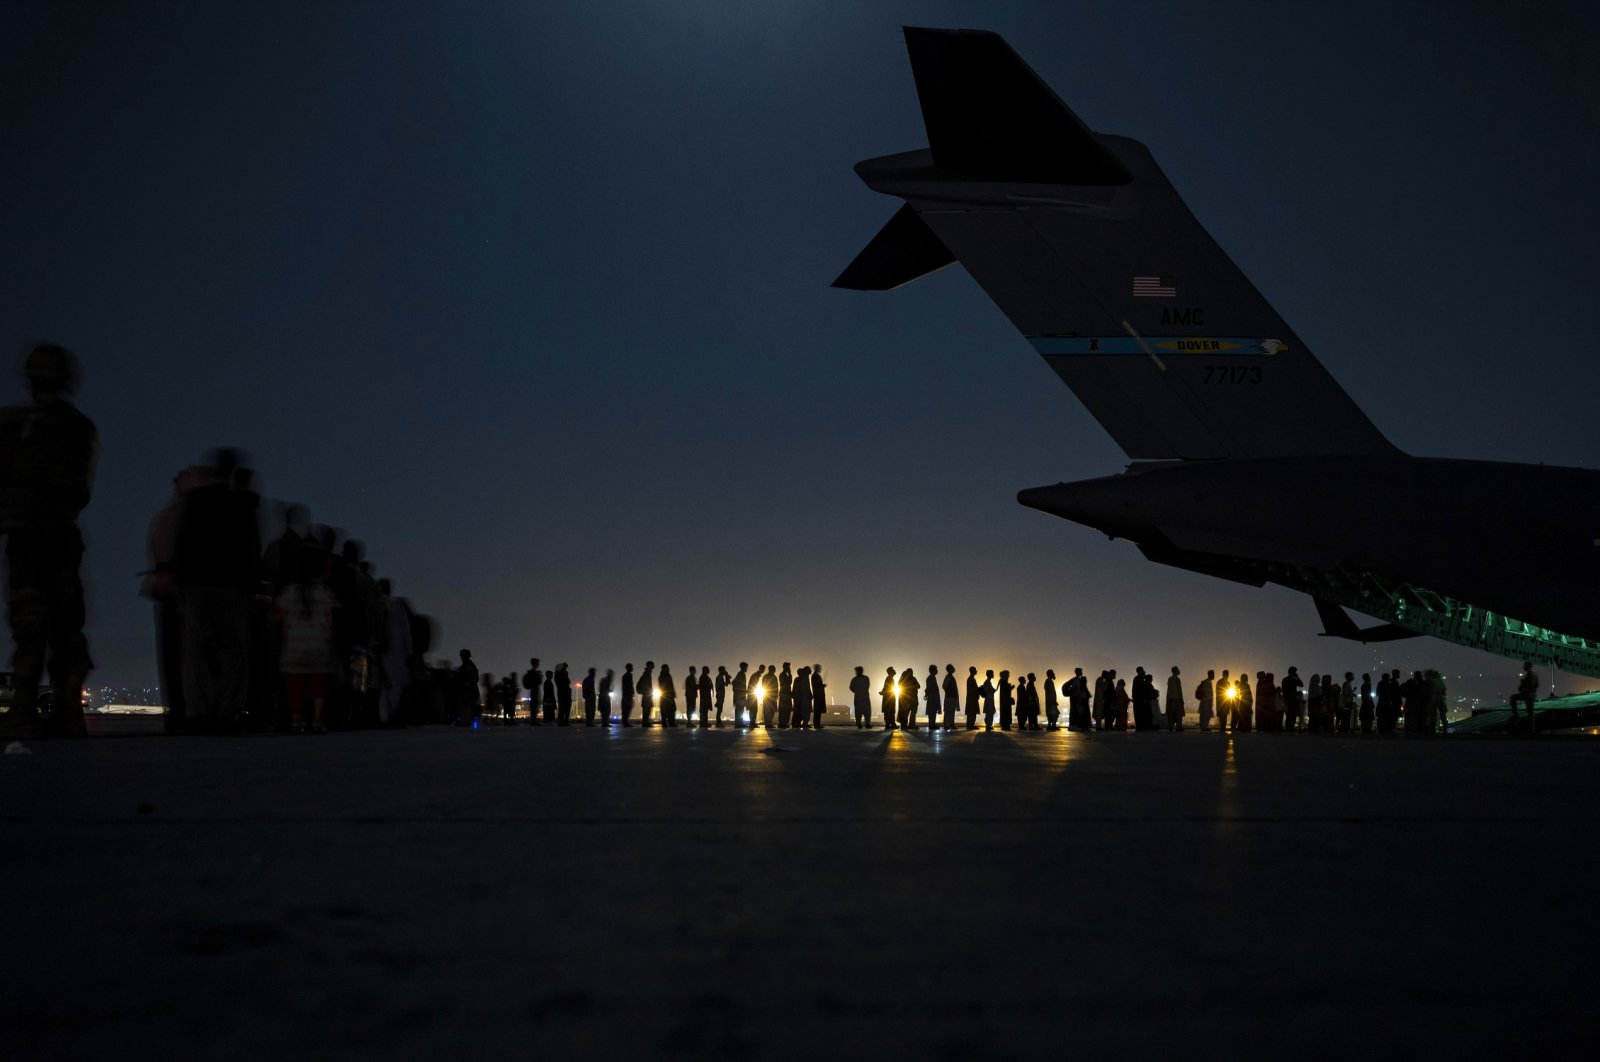 In this image provided by the U.S. Air Force, the U.S. Air Force aircrew, assigned to the 816th Expeditionary Airlift Squadron, prepare to load qualified evacuees aboard a U.S. Air Force C-17 Globemaster III aircraft in support of the Afghanistan evacuation at Hamid Karzai International Airport, Kabul, Afghanistan. (AP Photo)